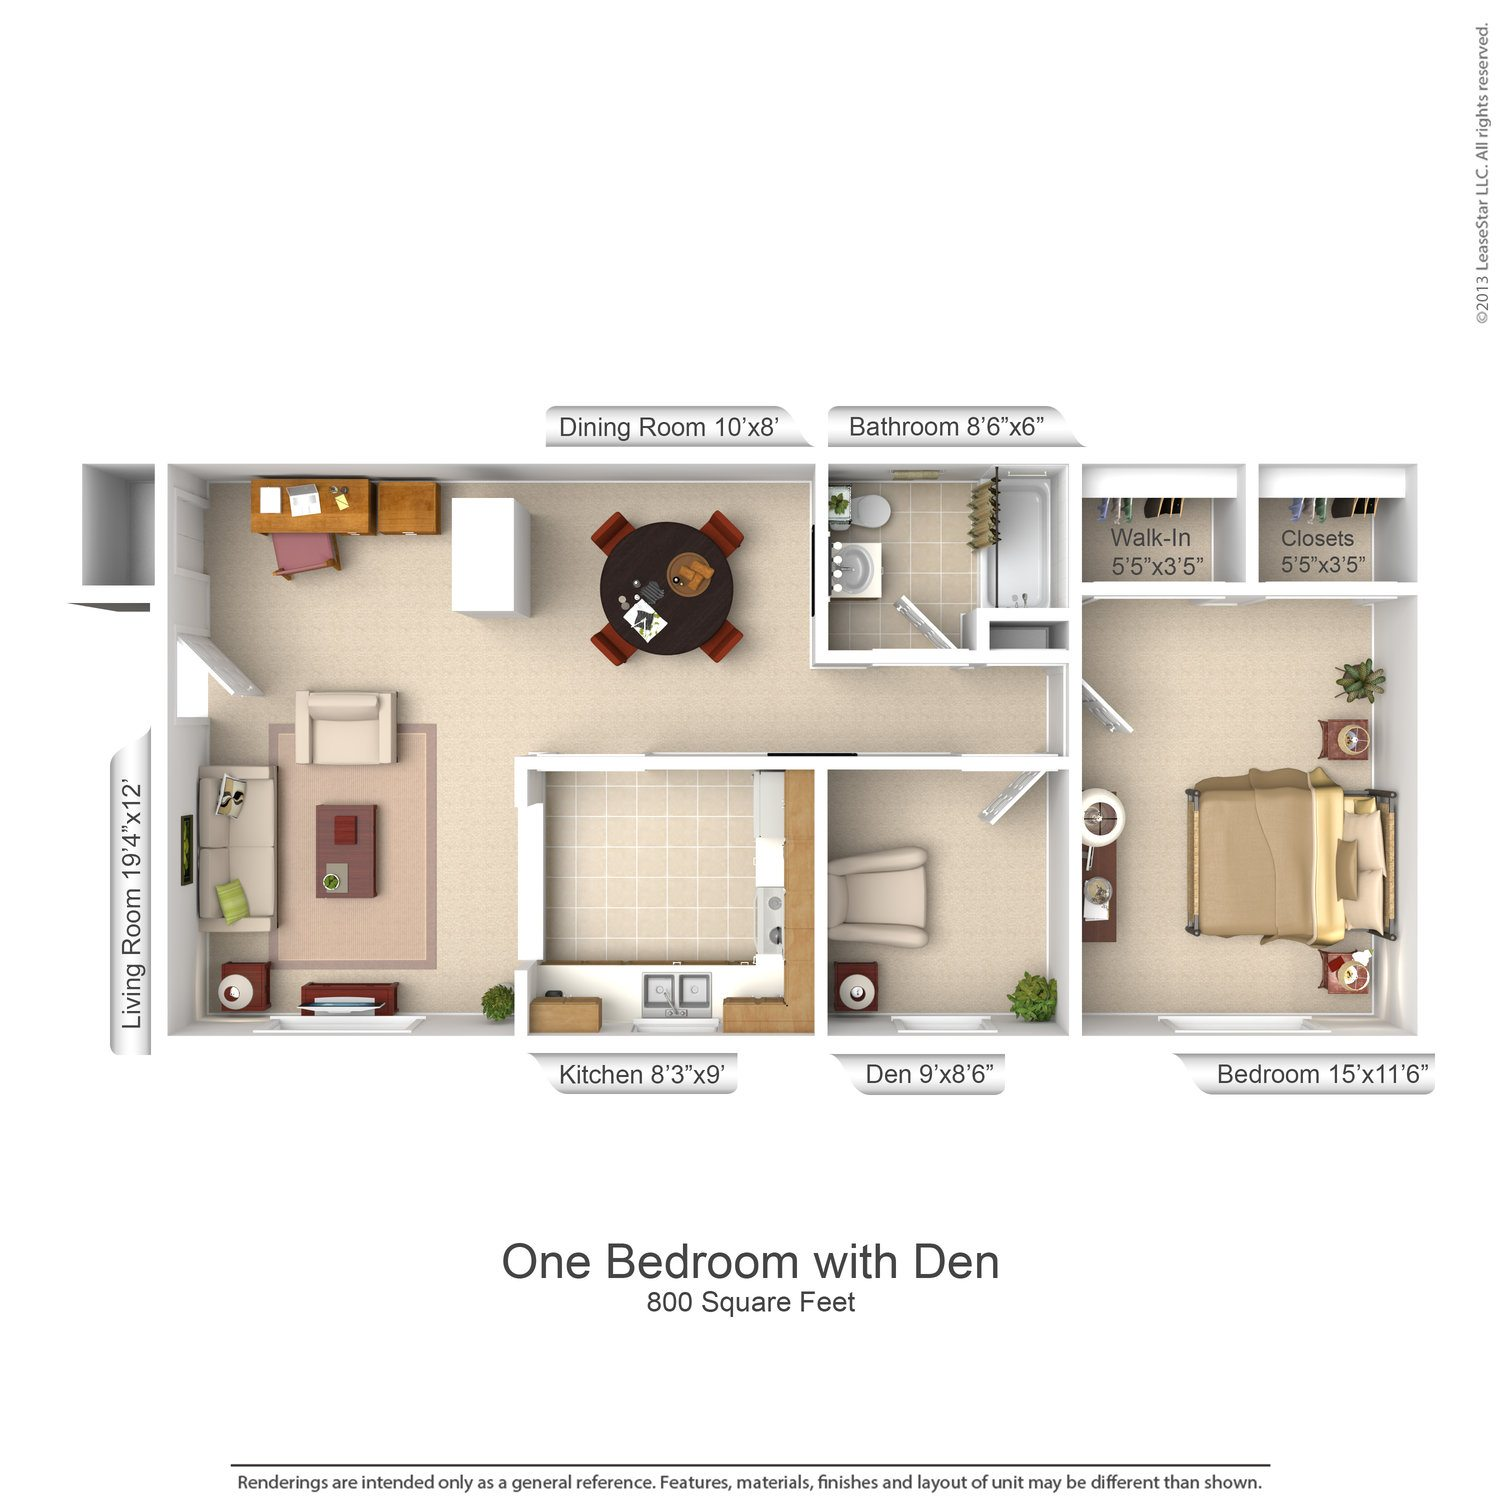 Apartments at pinebrook apartments in newark delaware for 1 bedroom and den apartments near me